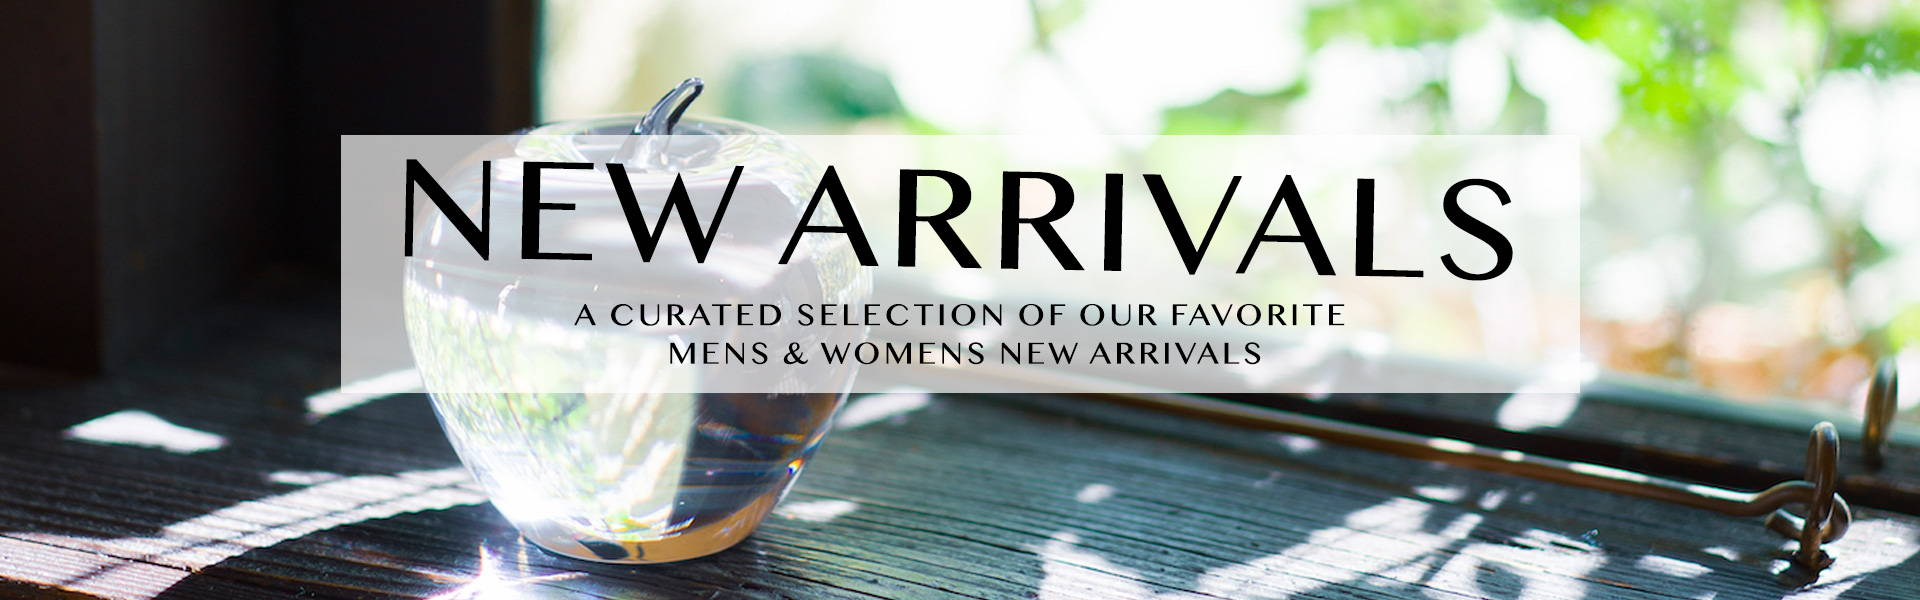 Shop Our Curated Selection of Our Favorite Mens & Womens New Arrivals